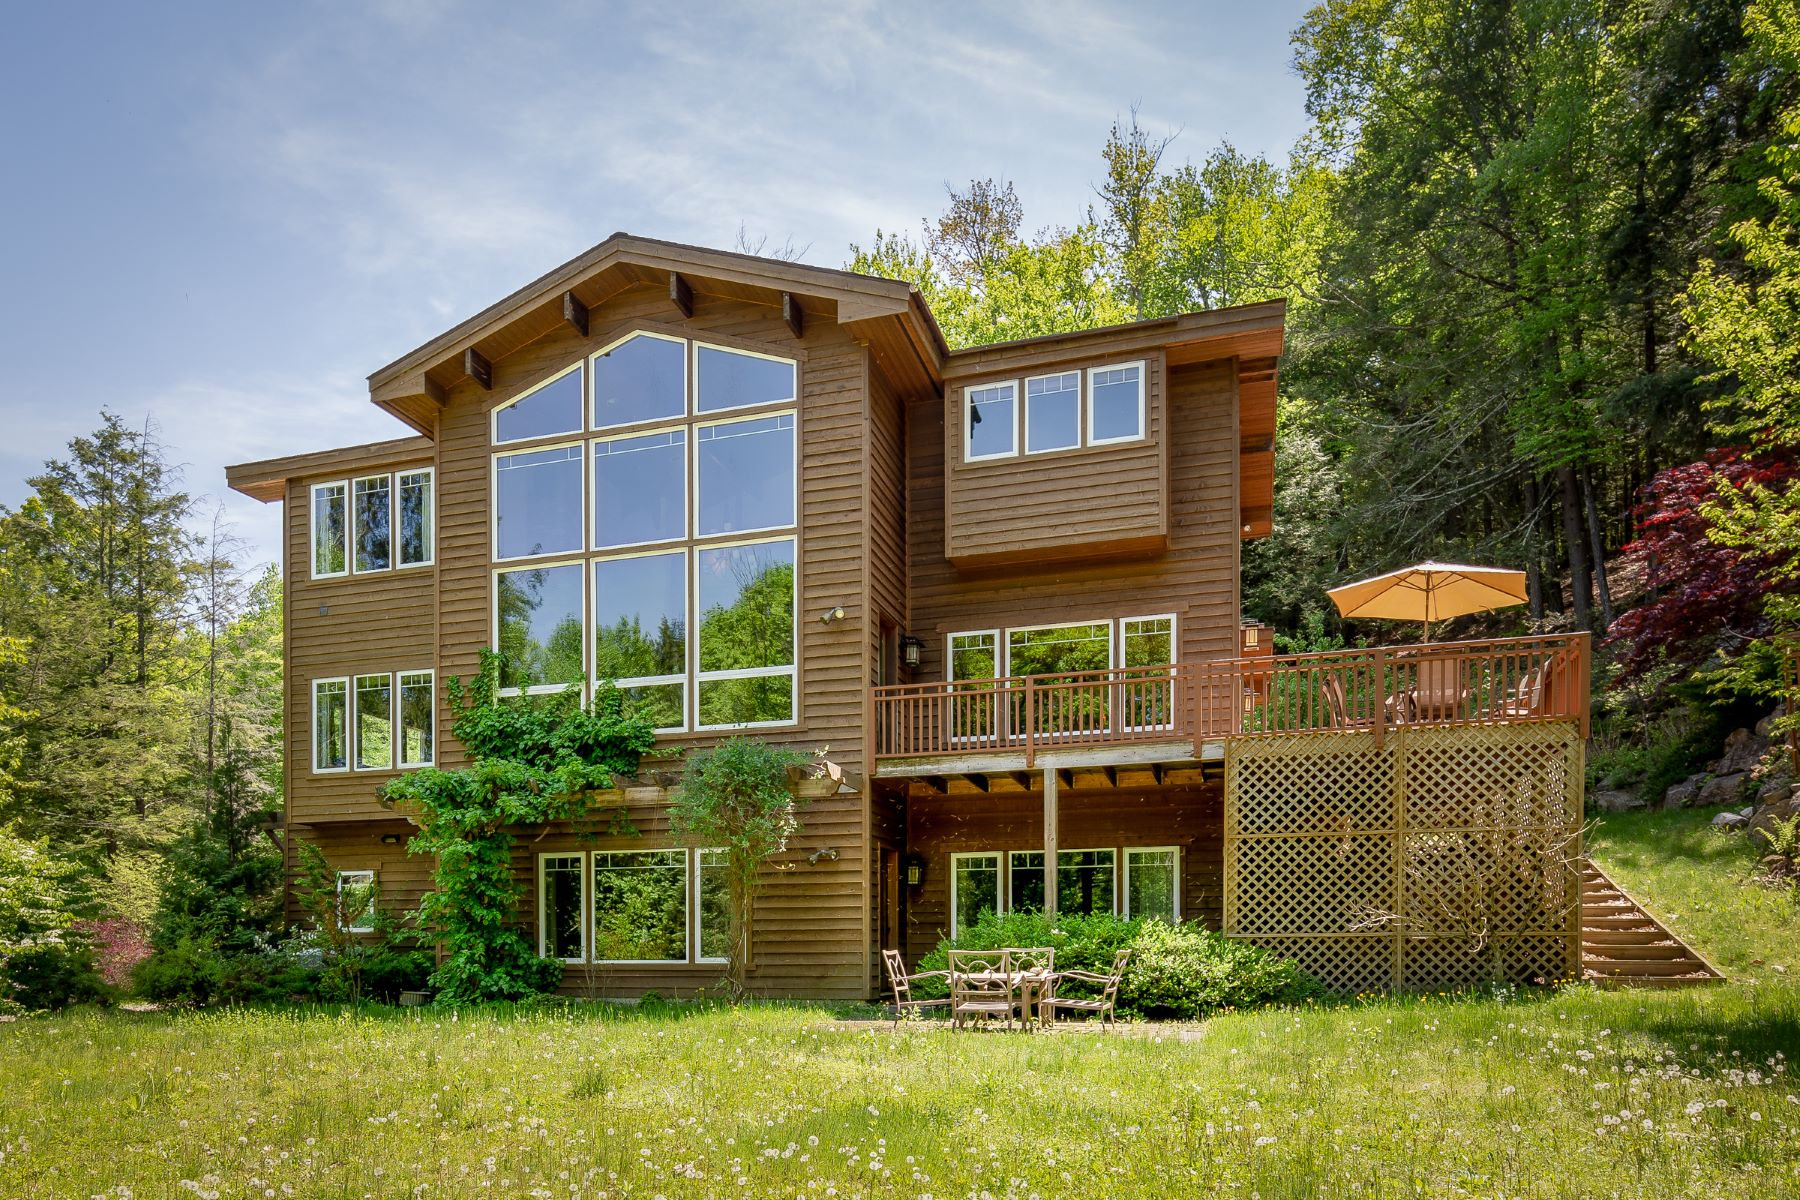 Single Family Home for Active at Spacious, Light-Filled Contemporary with Custom Arts and Crafts Details 4 East Mountain Rd Great Barrington, Massachusetts 01230 United States